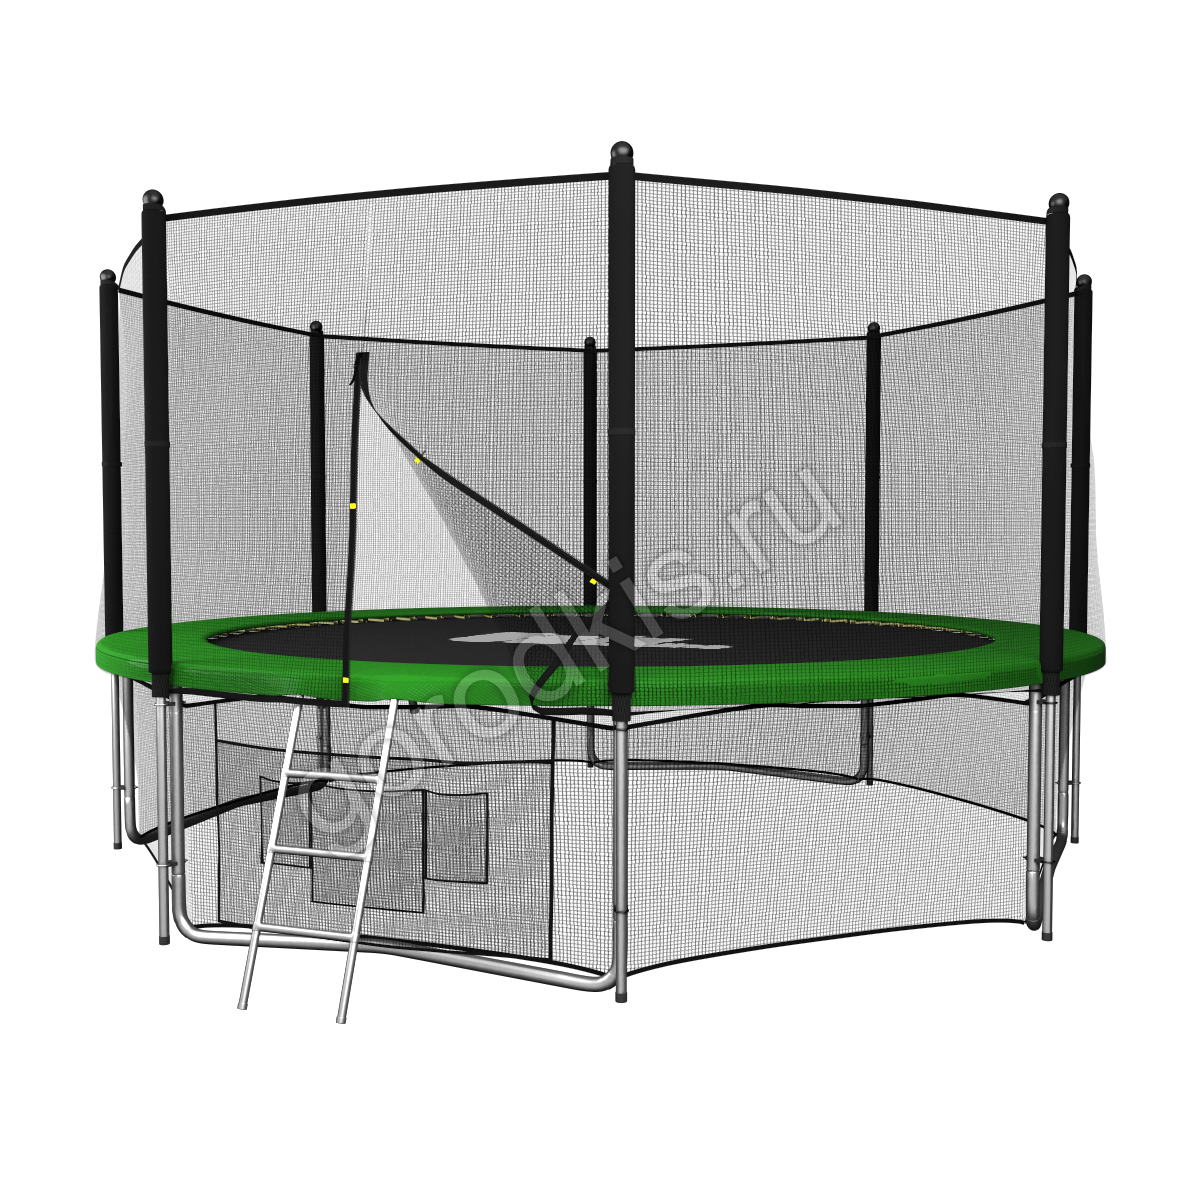 Батут с сеткой UNIX line 12ft outside (green)